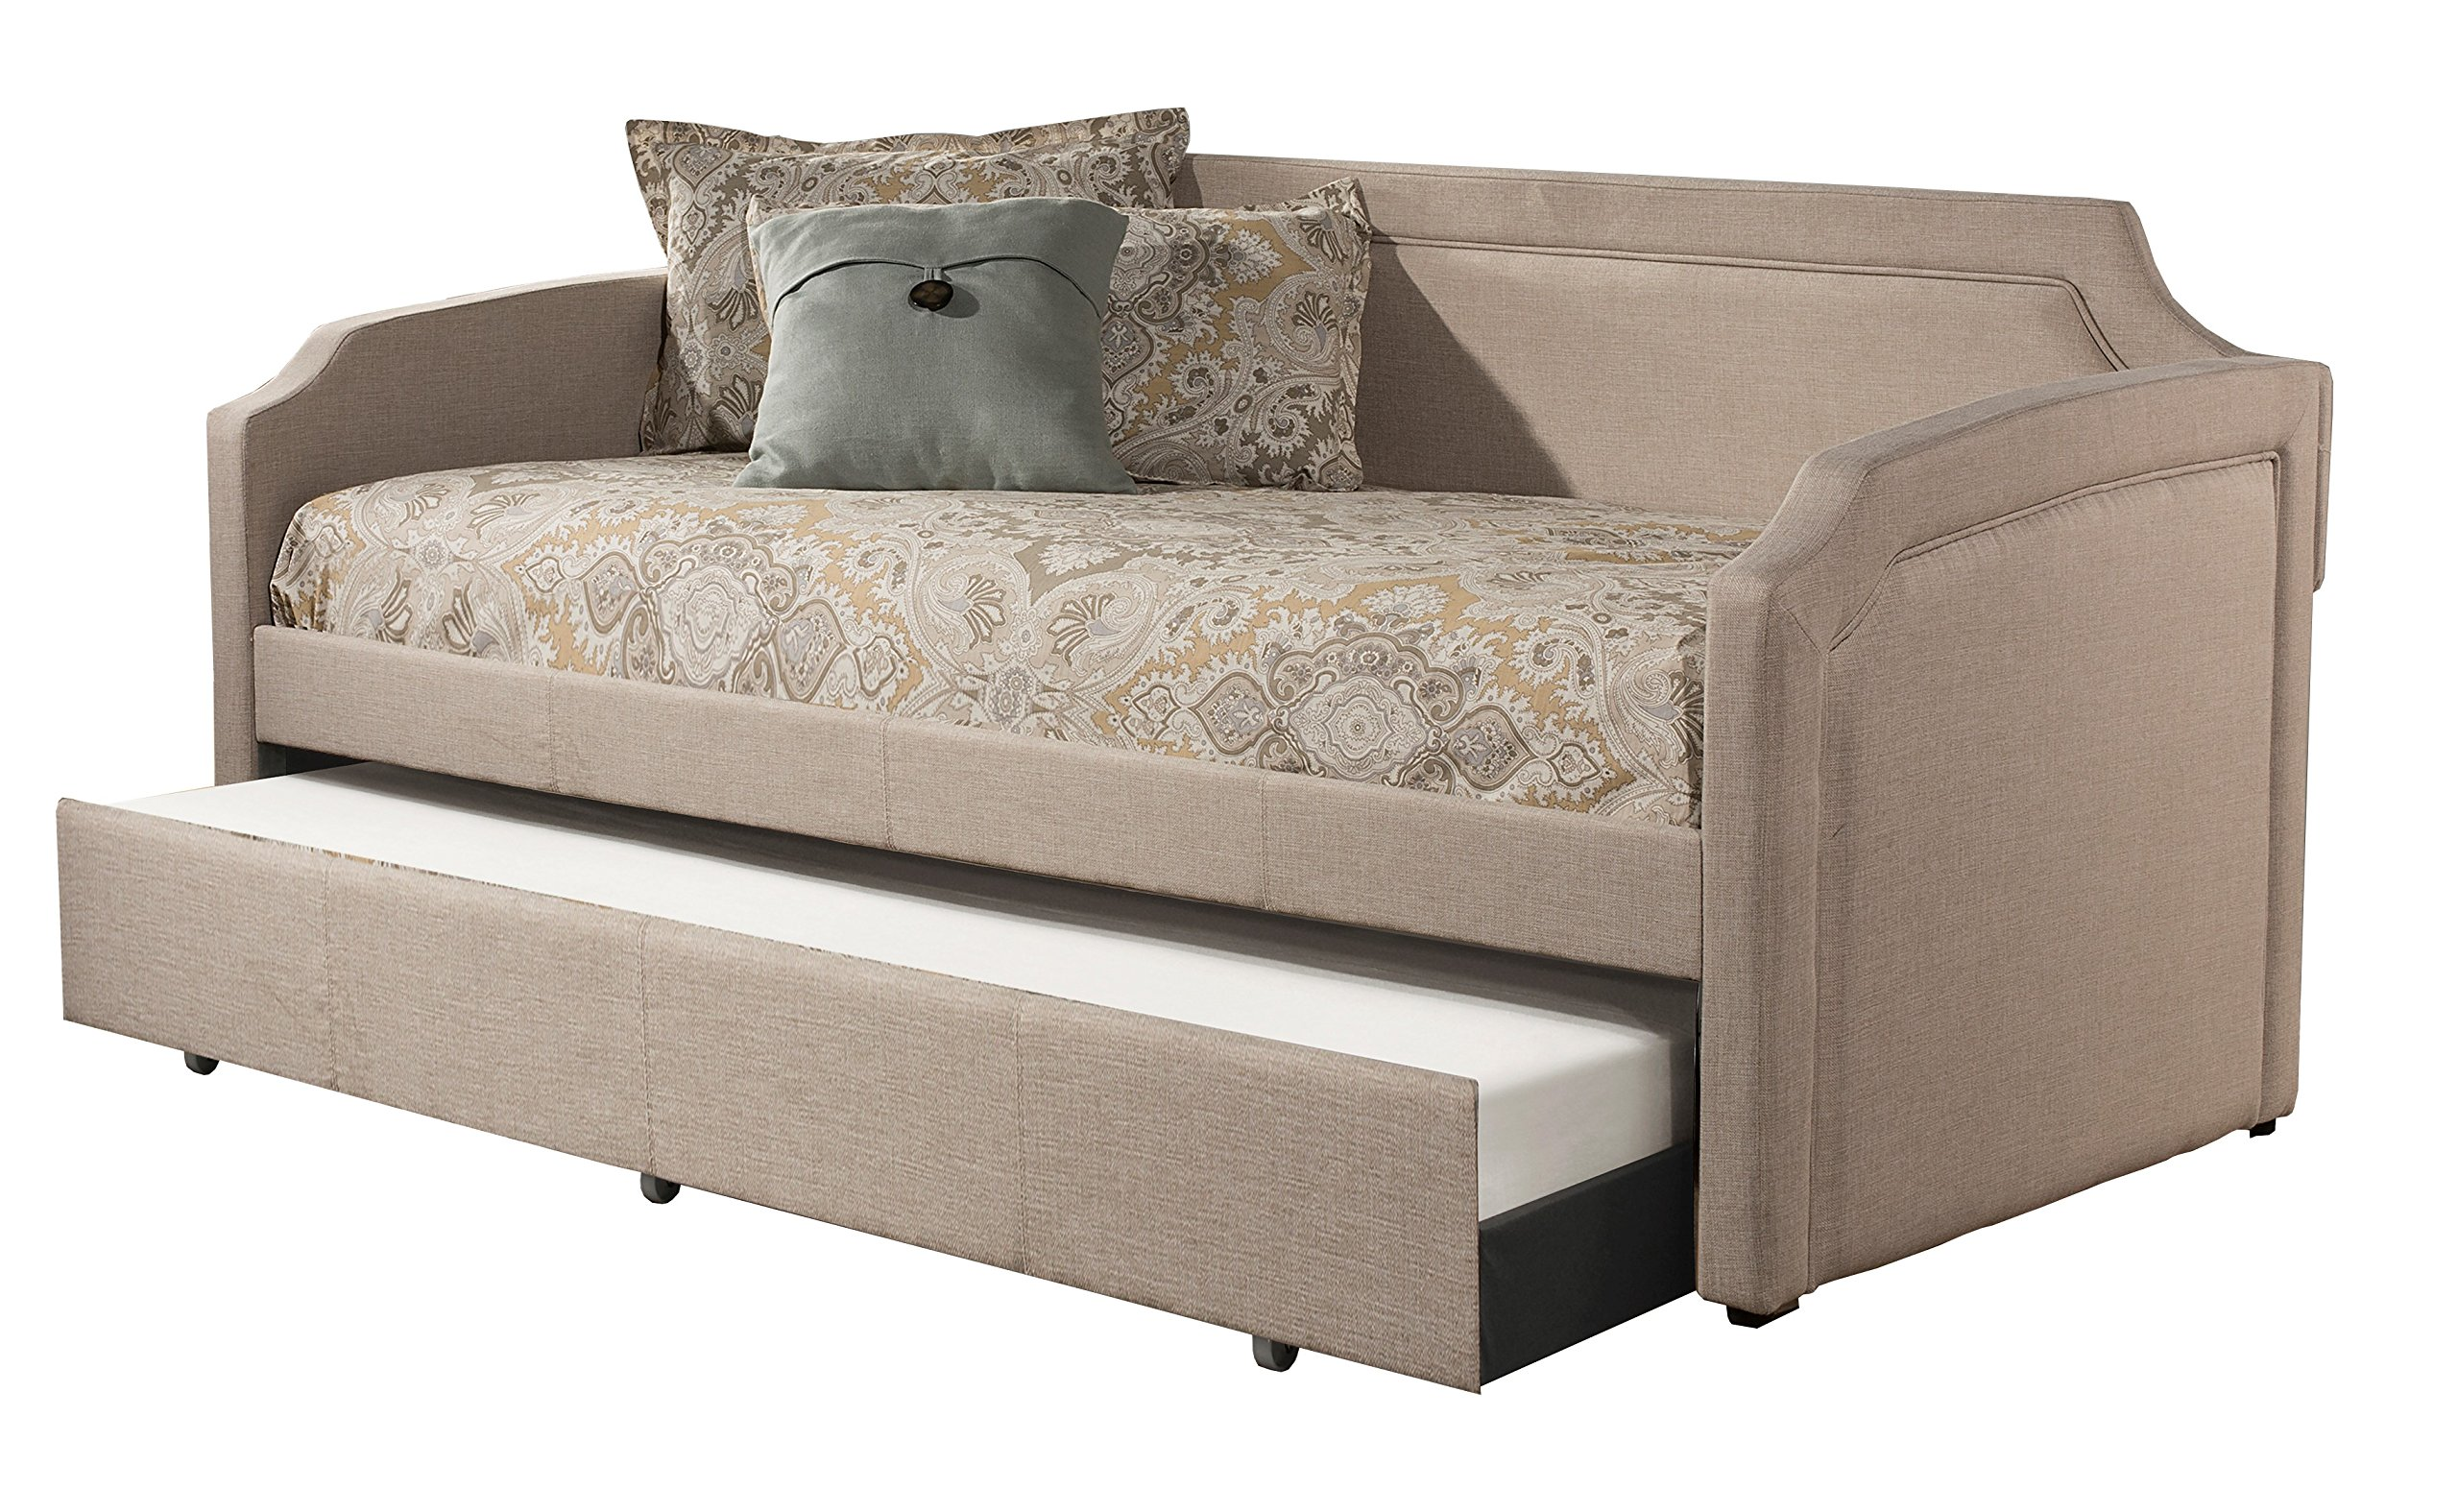 Hillsdale Furniture 1322DBT Hillsdale Paxton, Cream Daybed with Trundle